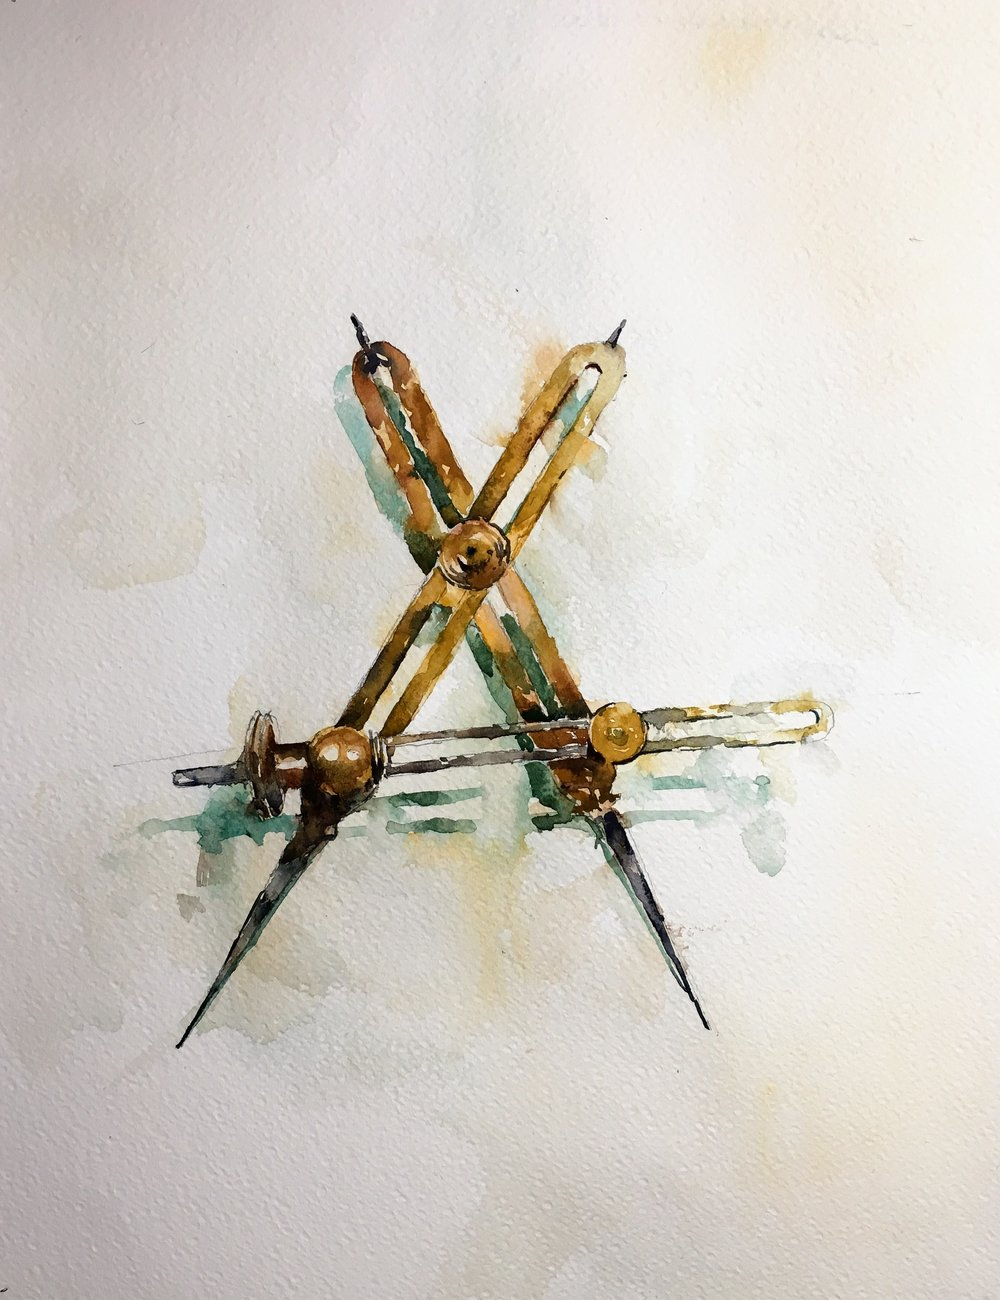 brass_callipers_watercolor.jpg